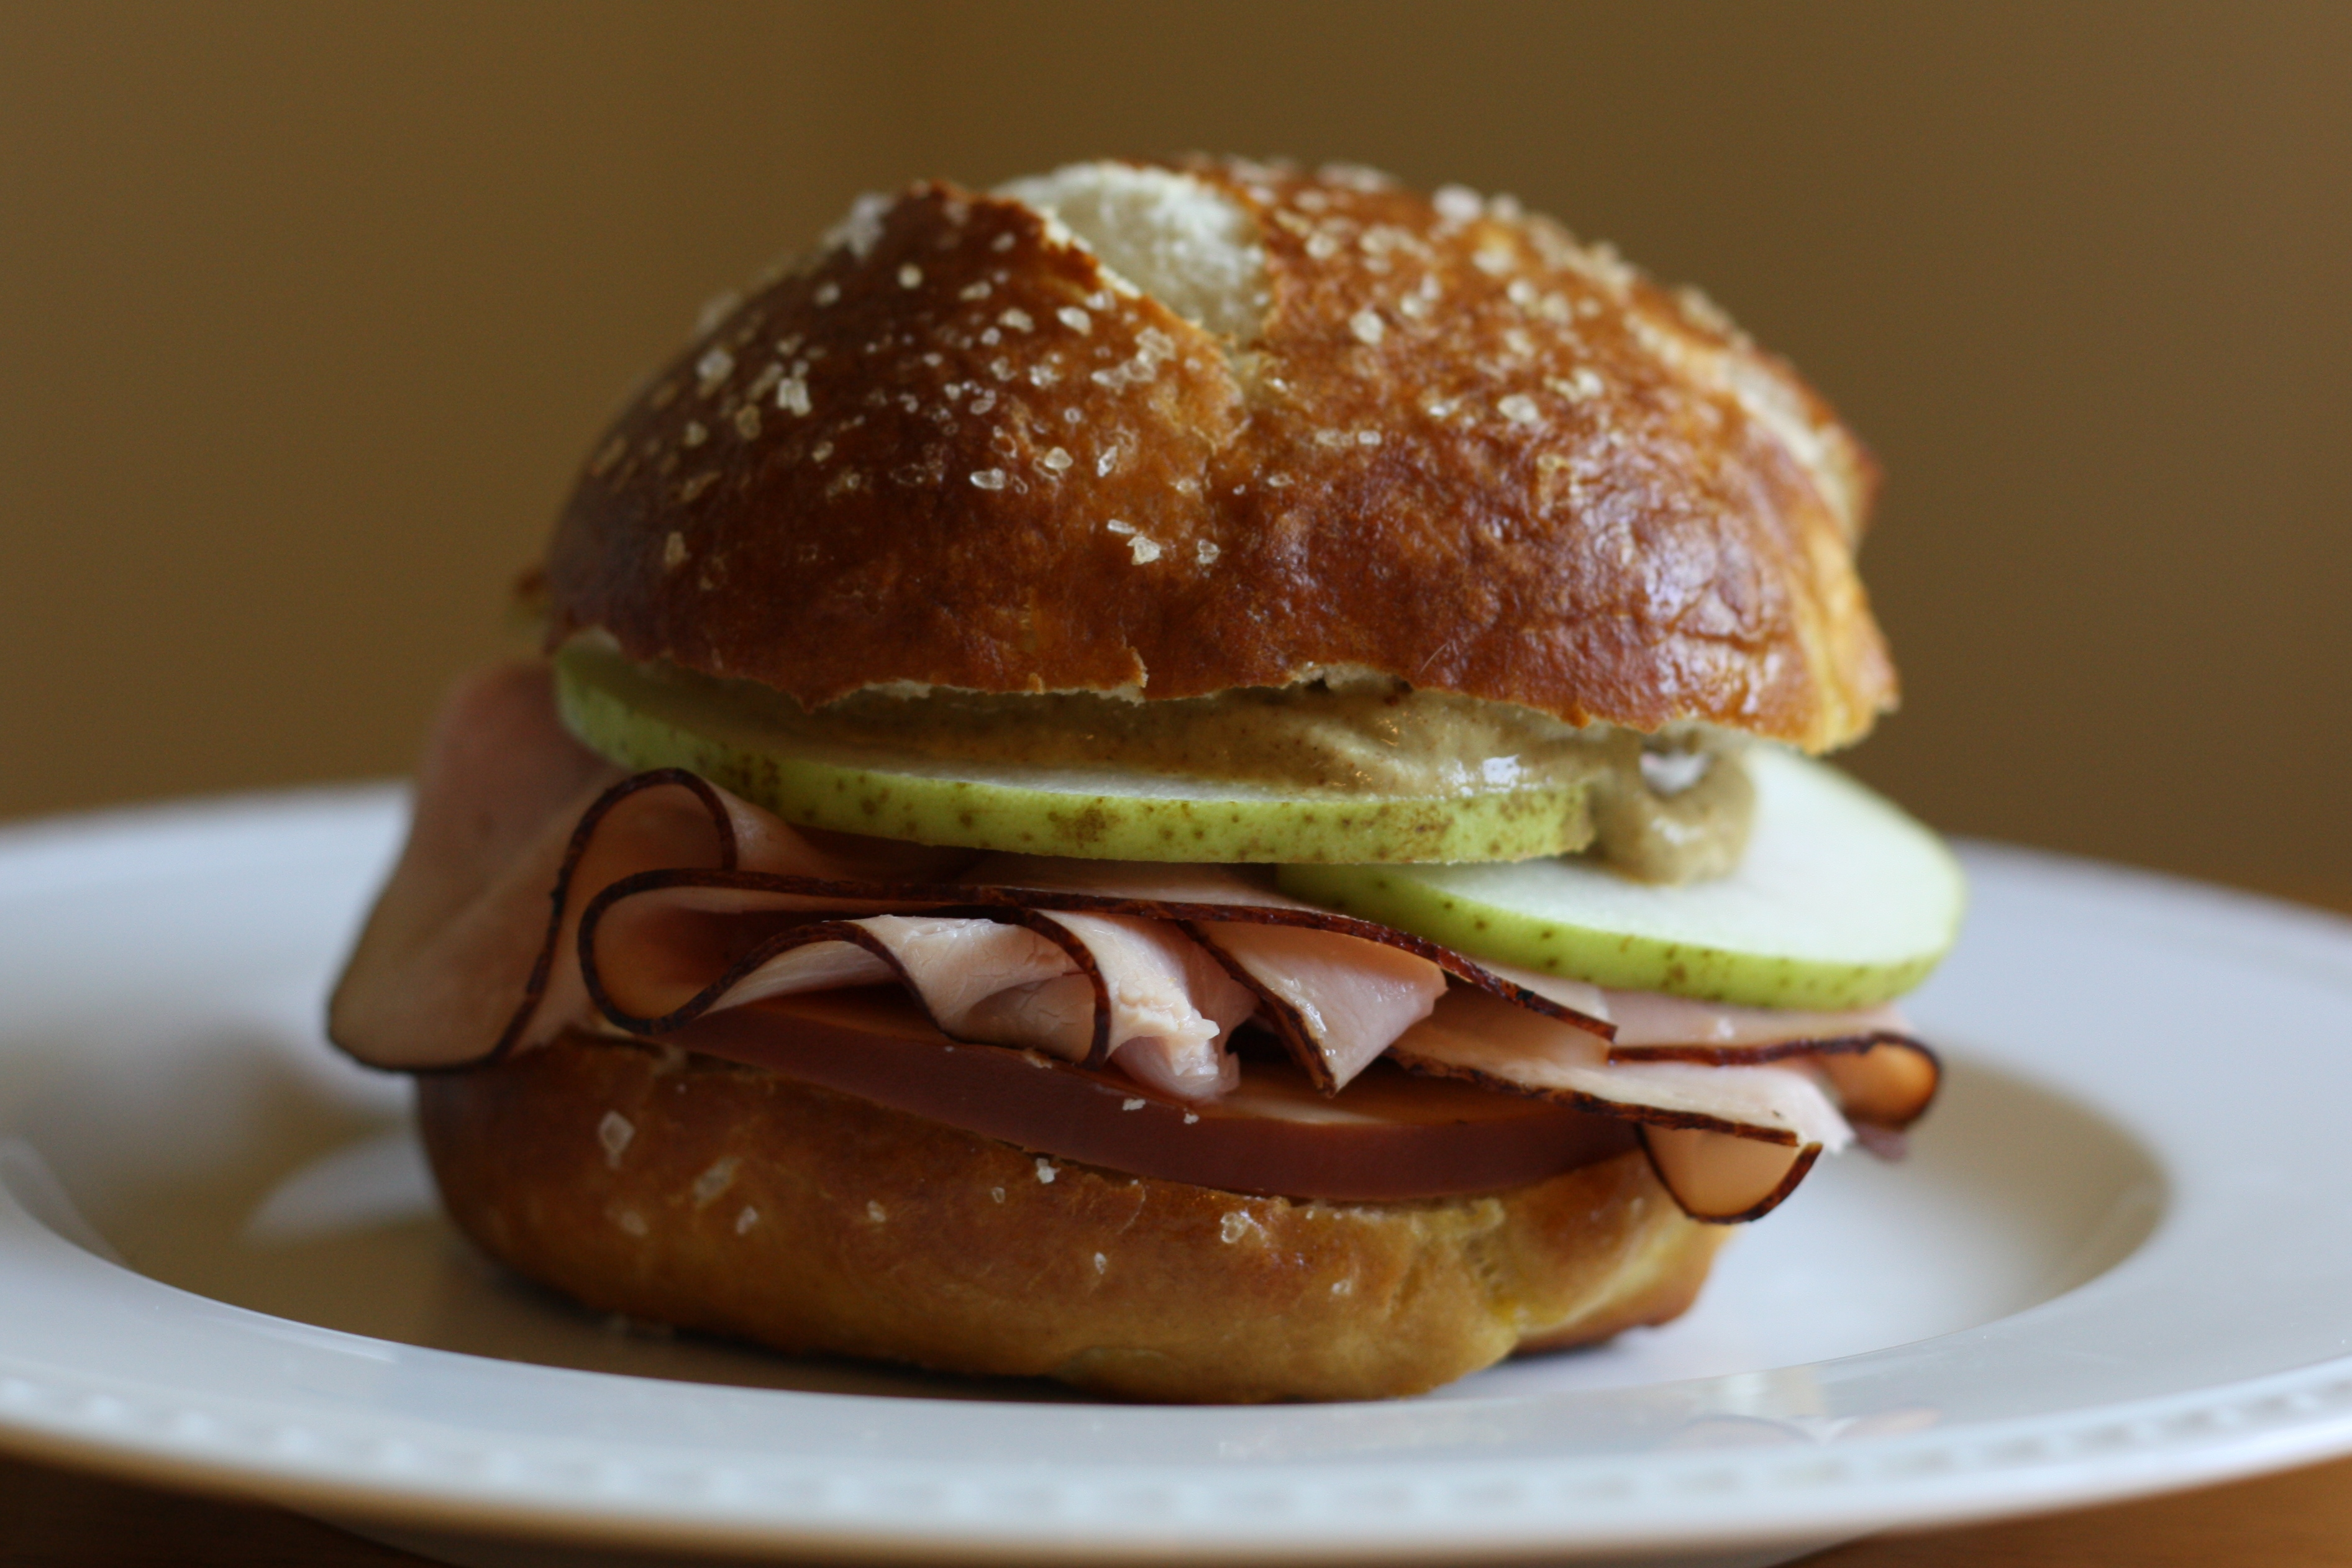 ... Smoked Gouda, Black Forest Ham, Thinly Sliced Pear, and German Mustard